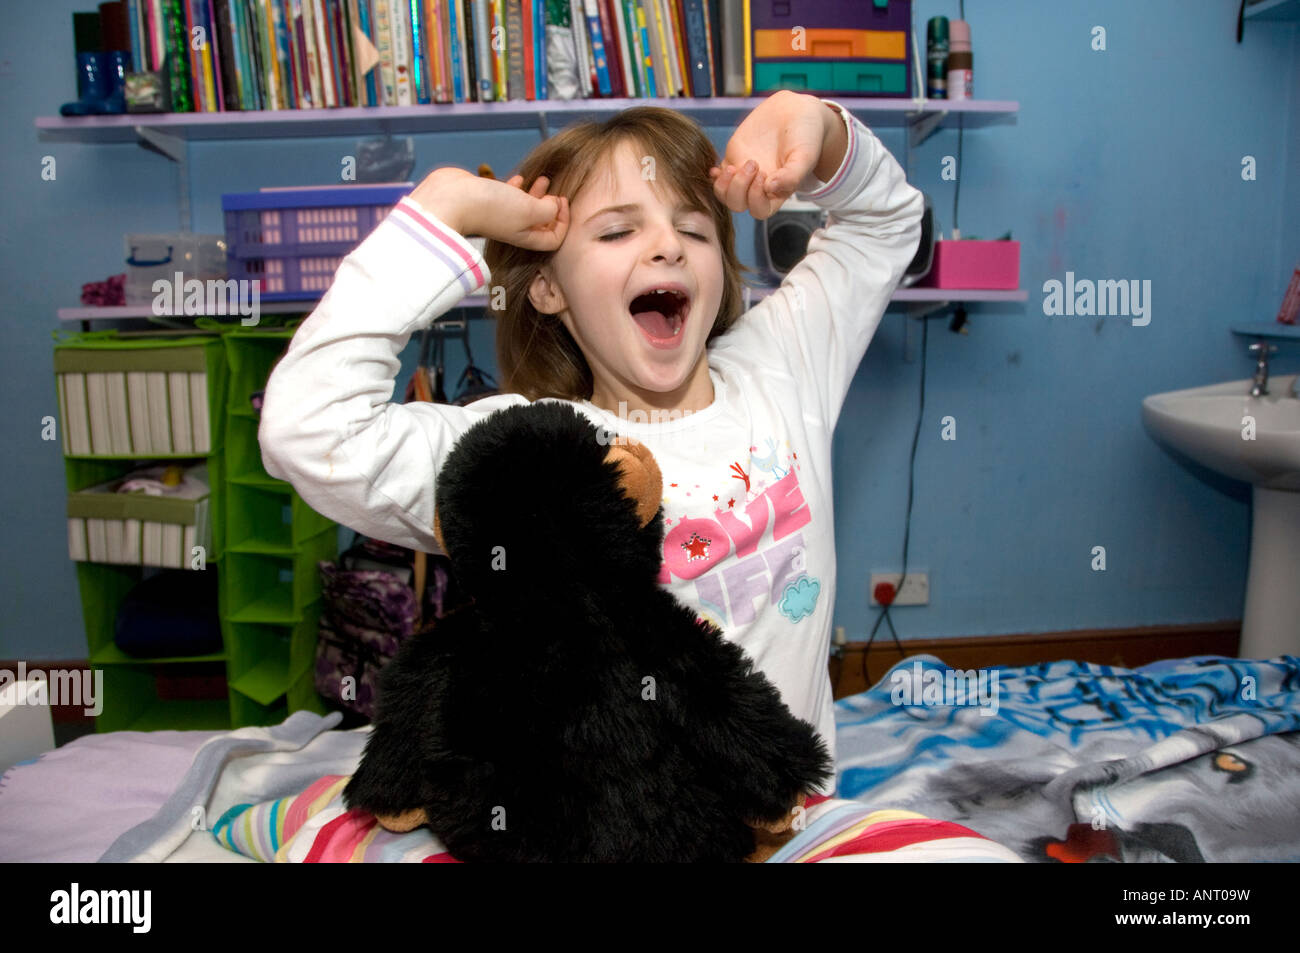 preteen stretch nine year old girl child stretching and yawning, sitting on her bed wearing her pyjamas